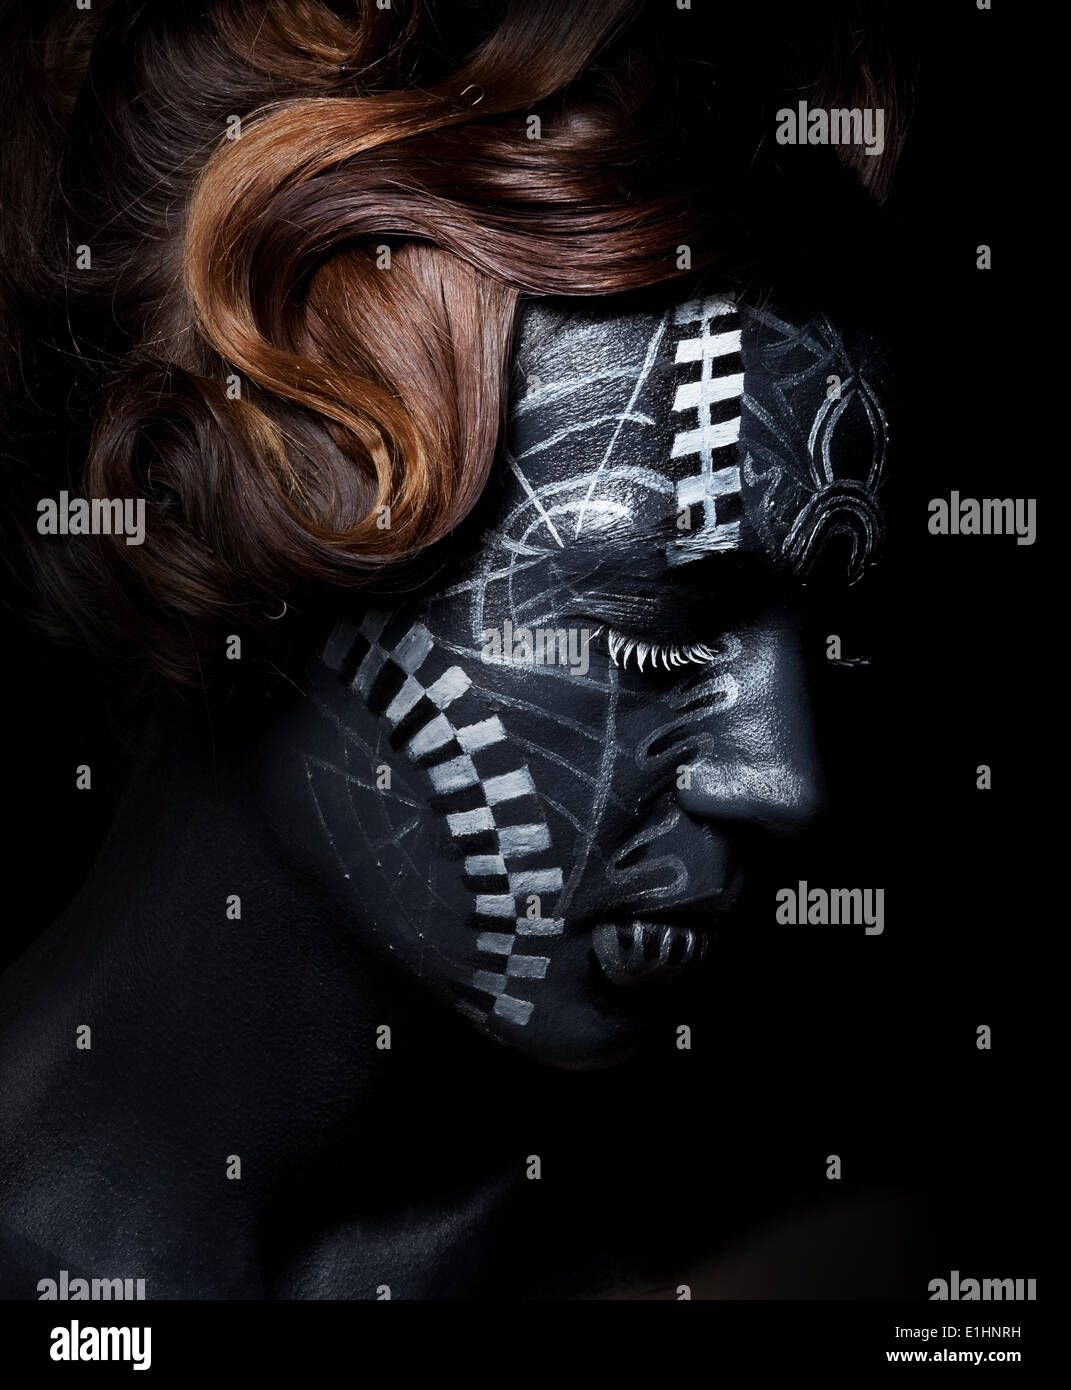 Sad woman with black painted face in carnival mask - Stock Image